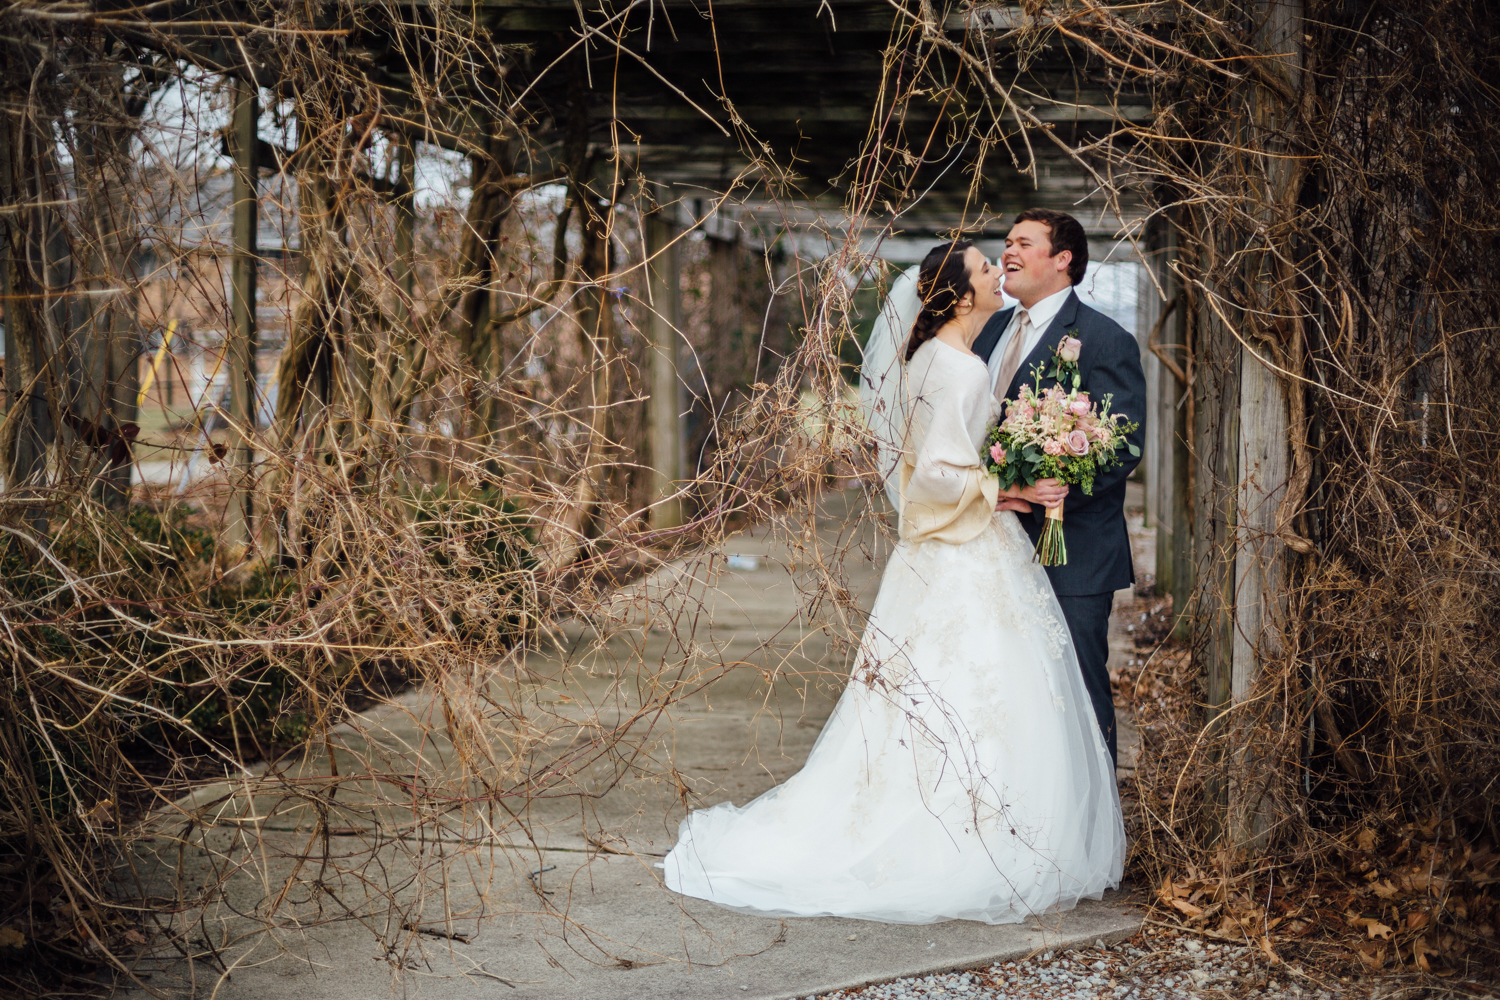 Fun, Intimate Spring Wedding by Corrie Mick Photography-56.jpg